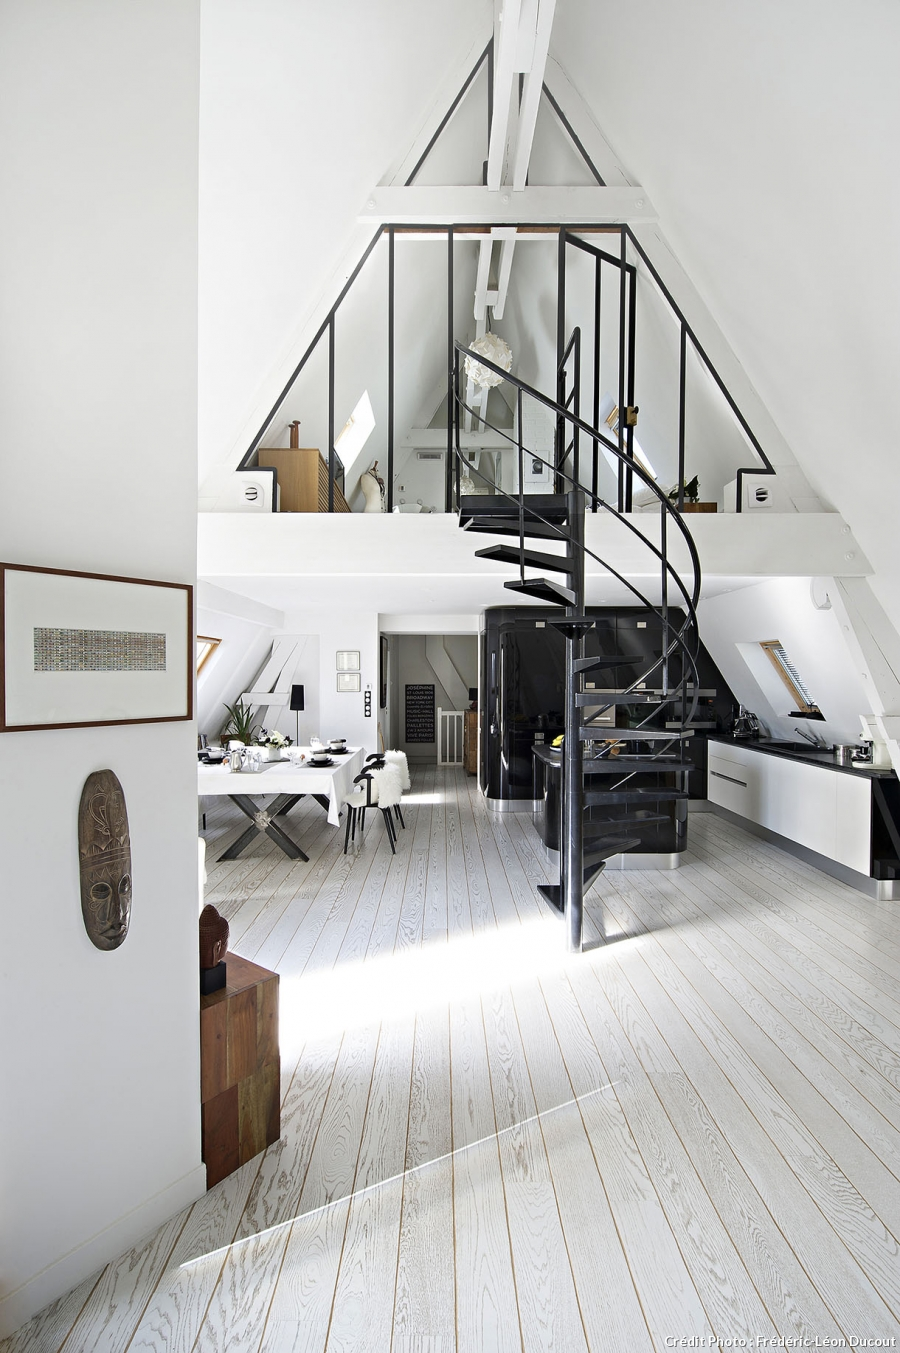 loft sous toit paris mezzanine vitrage atelier escalier colimasson parquet blanc cuisine equipee. Black Bedroom Furniture Sets. Home Design Ideas